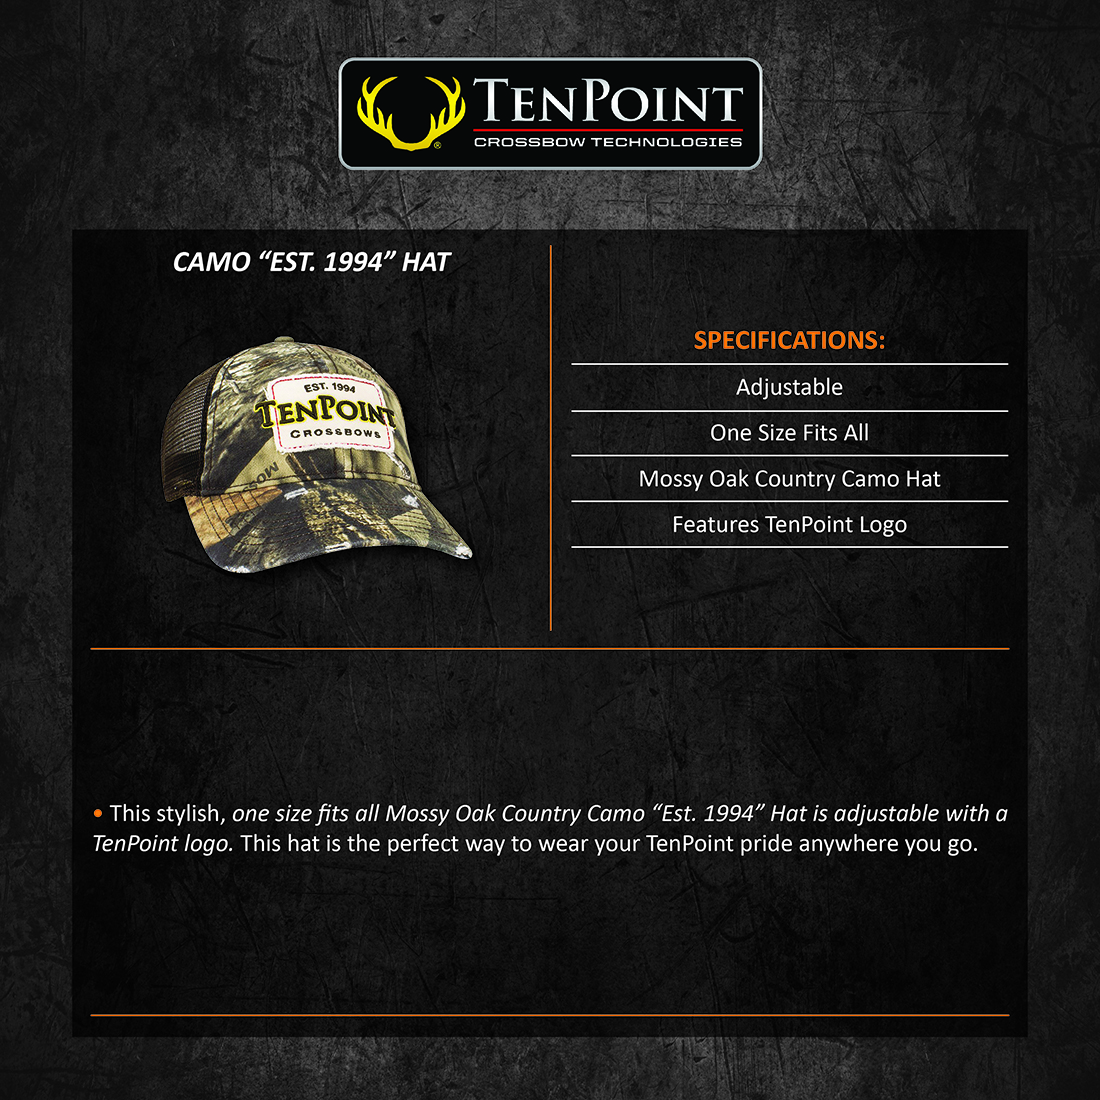 TenPoint_Camo_Est_1994_Hat_Product_Description